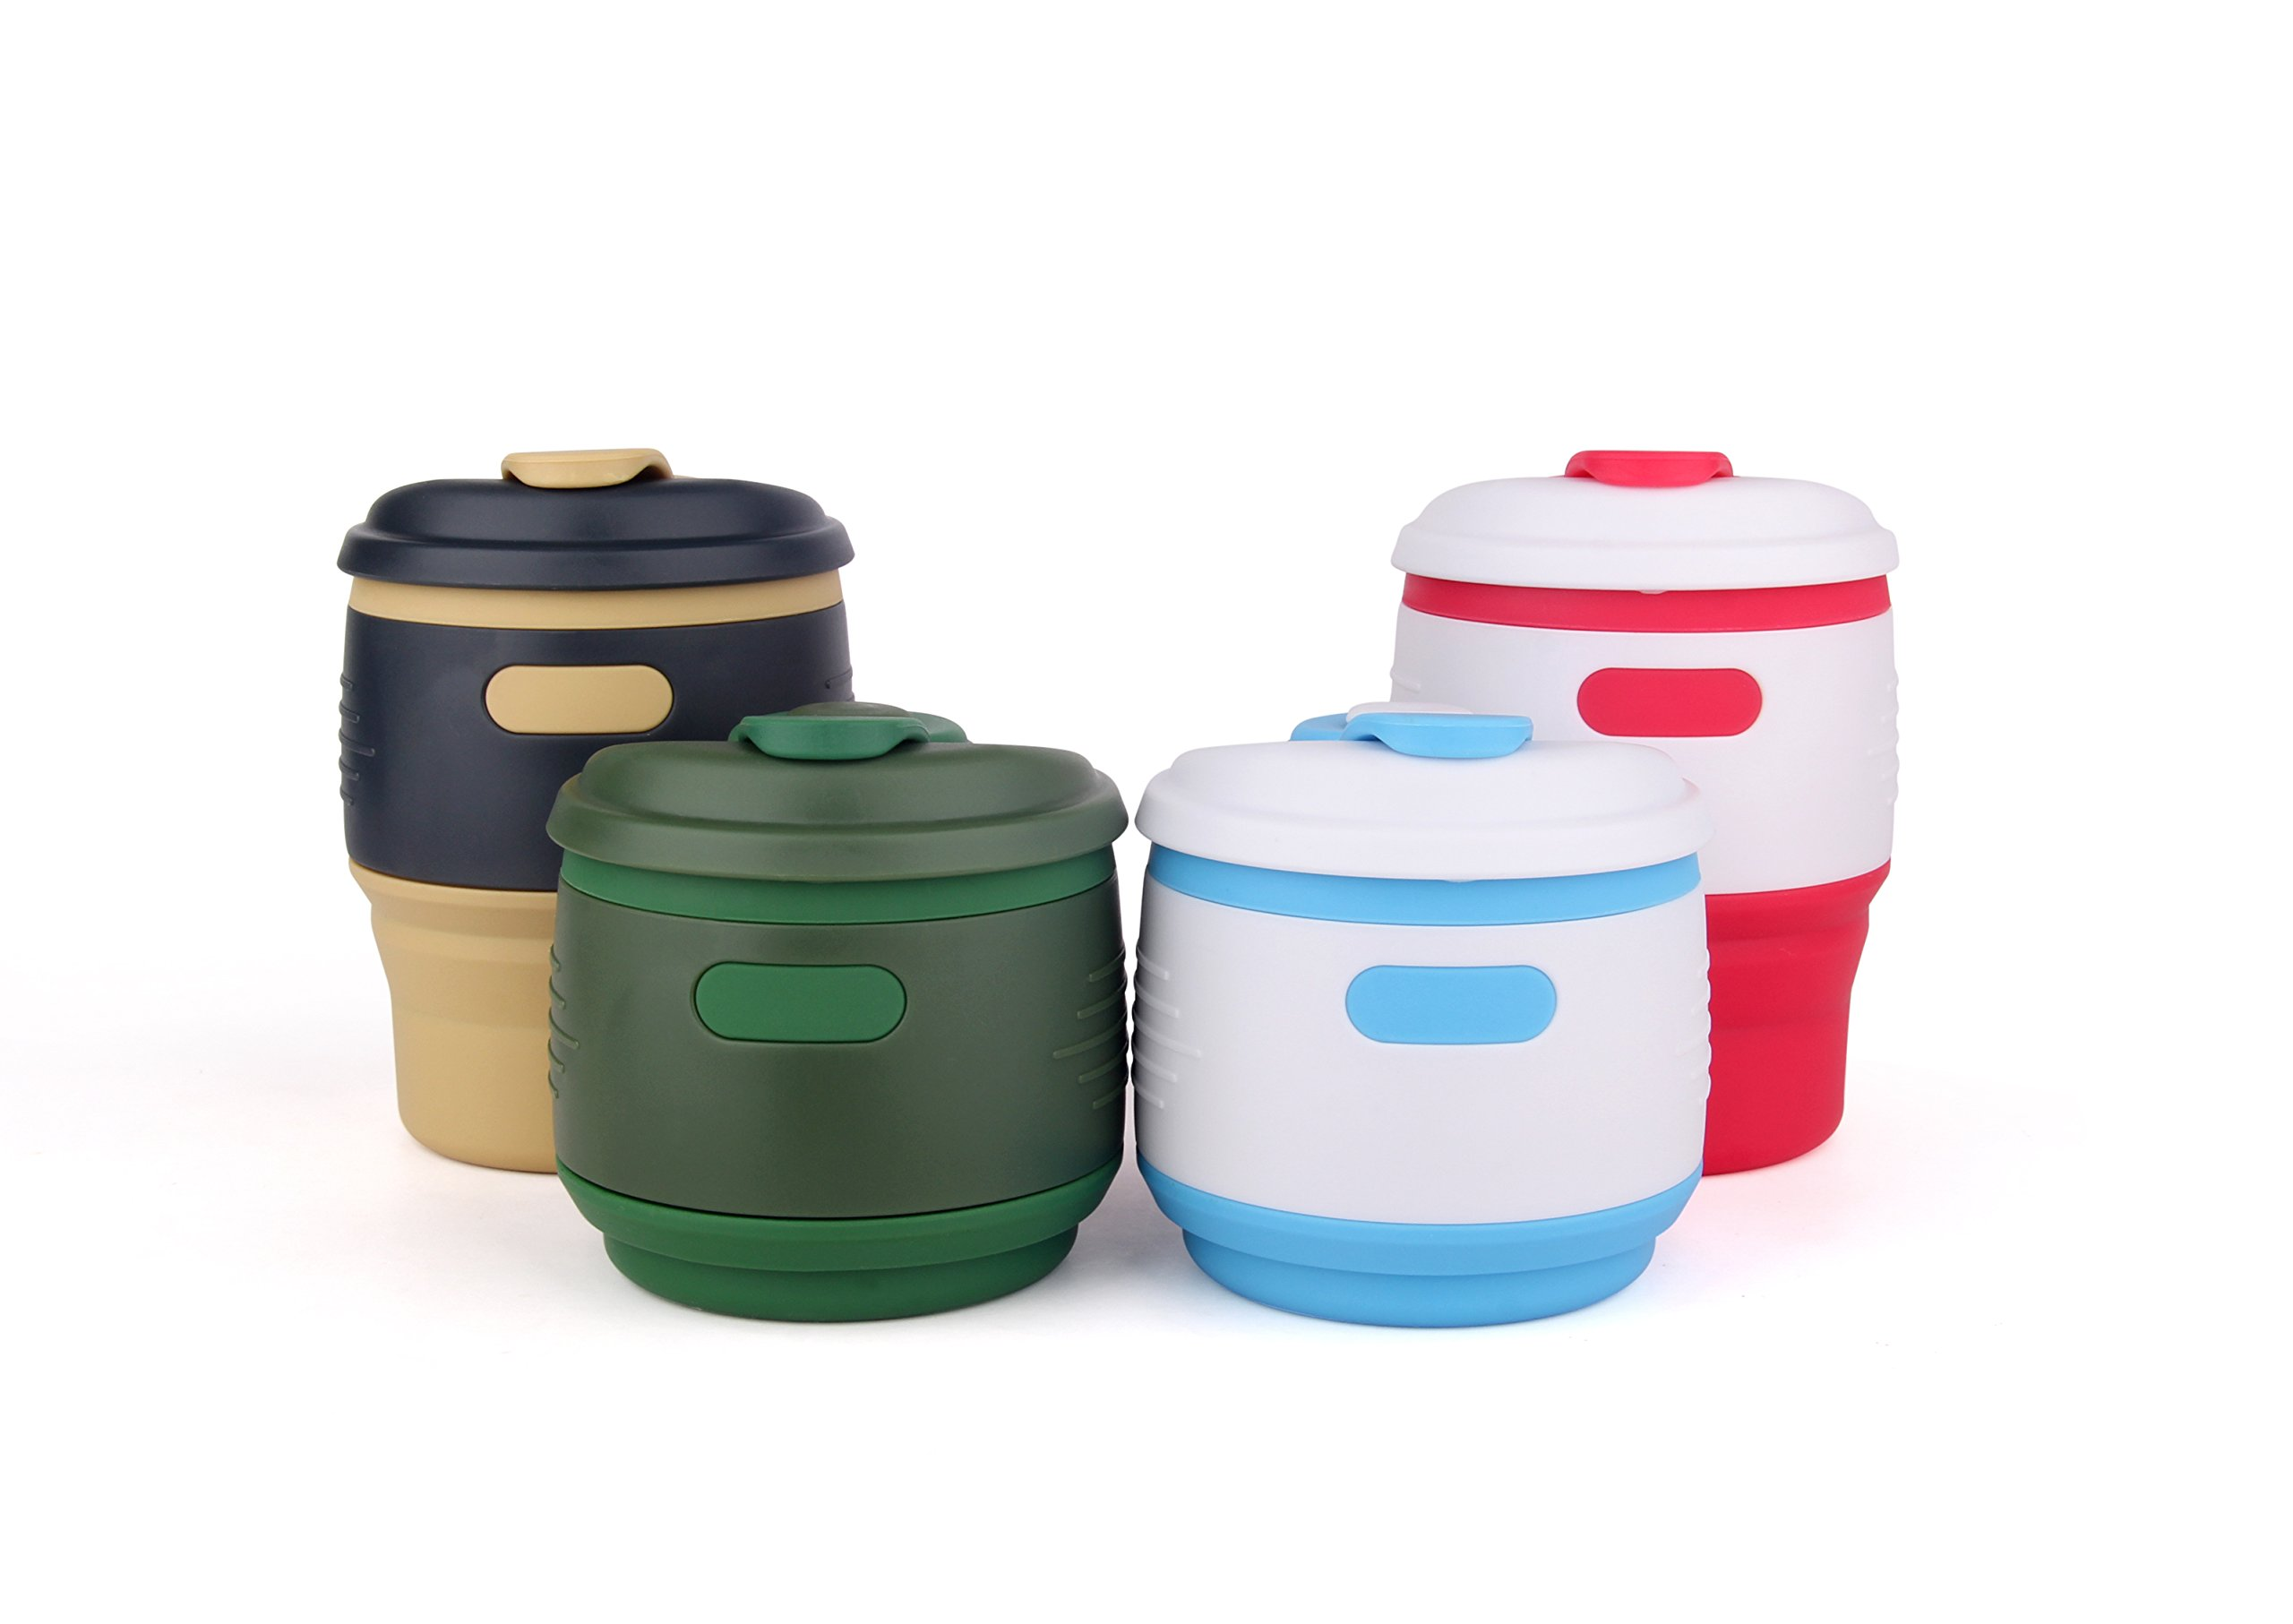 FirstFlourish Pack of 4 Max 12oz Portable Collapsible Coffee Cup with Lid, BPA Free Silicone, Reusable Travel Cup Compact Tea Cup for Hiking and Camping (pack of 4)